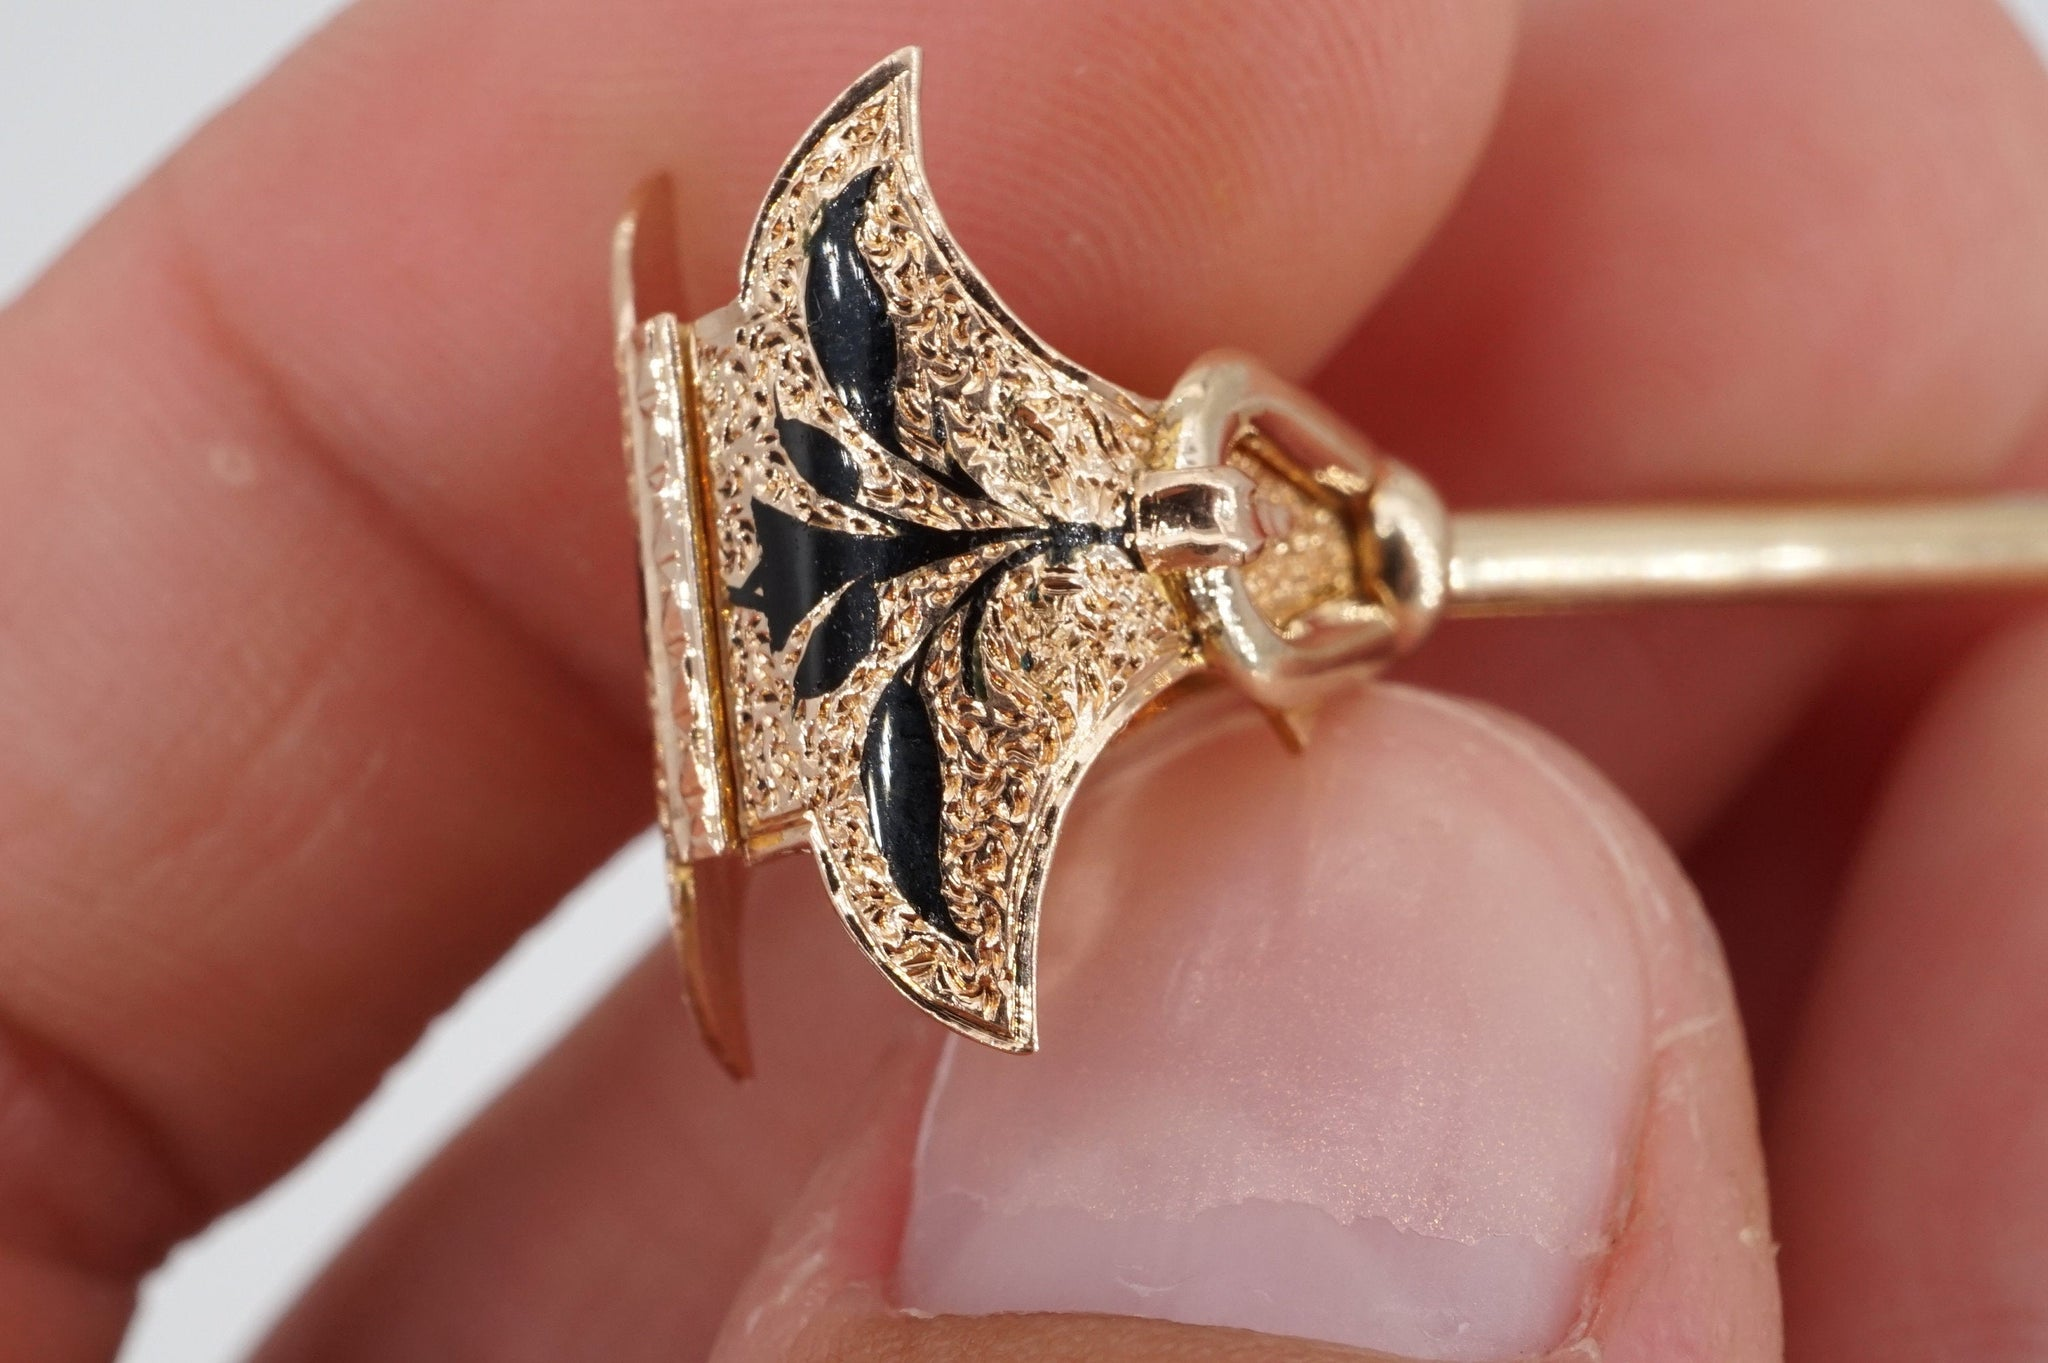 antique victorian 14k gold taille d'epargne enamel mourning handkerchief holder ring, size 3.5